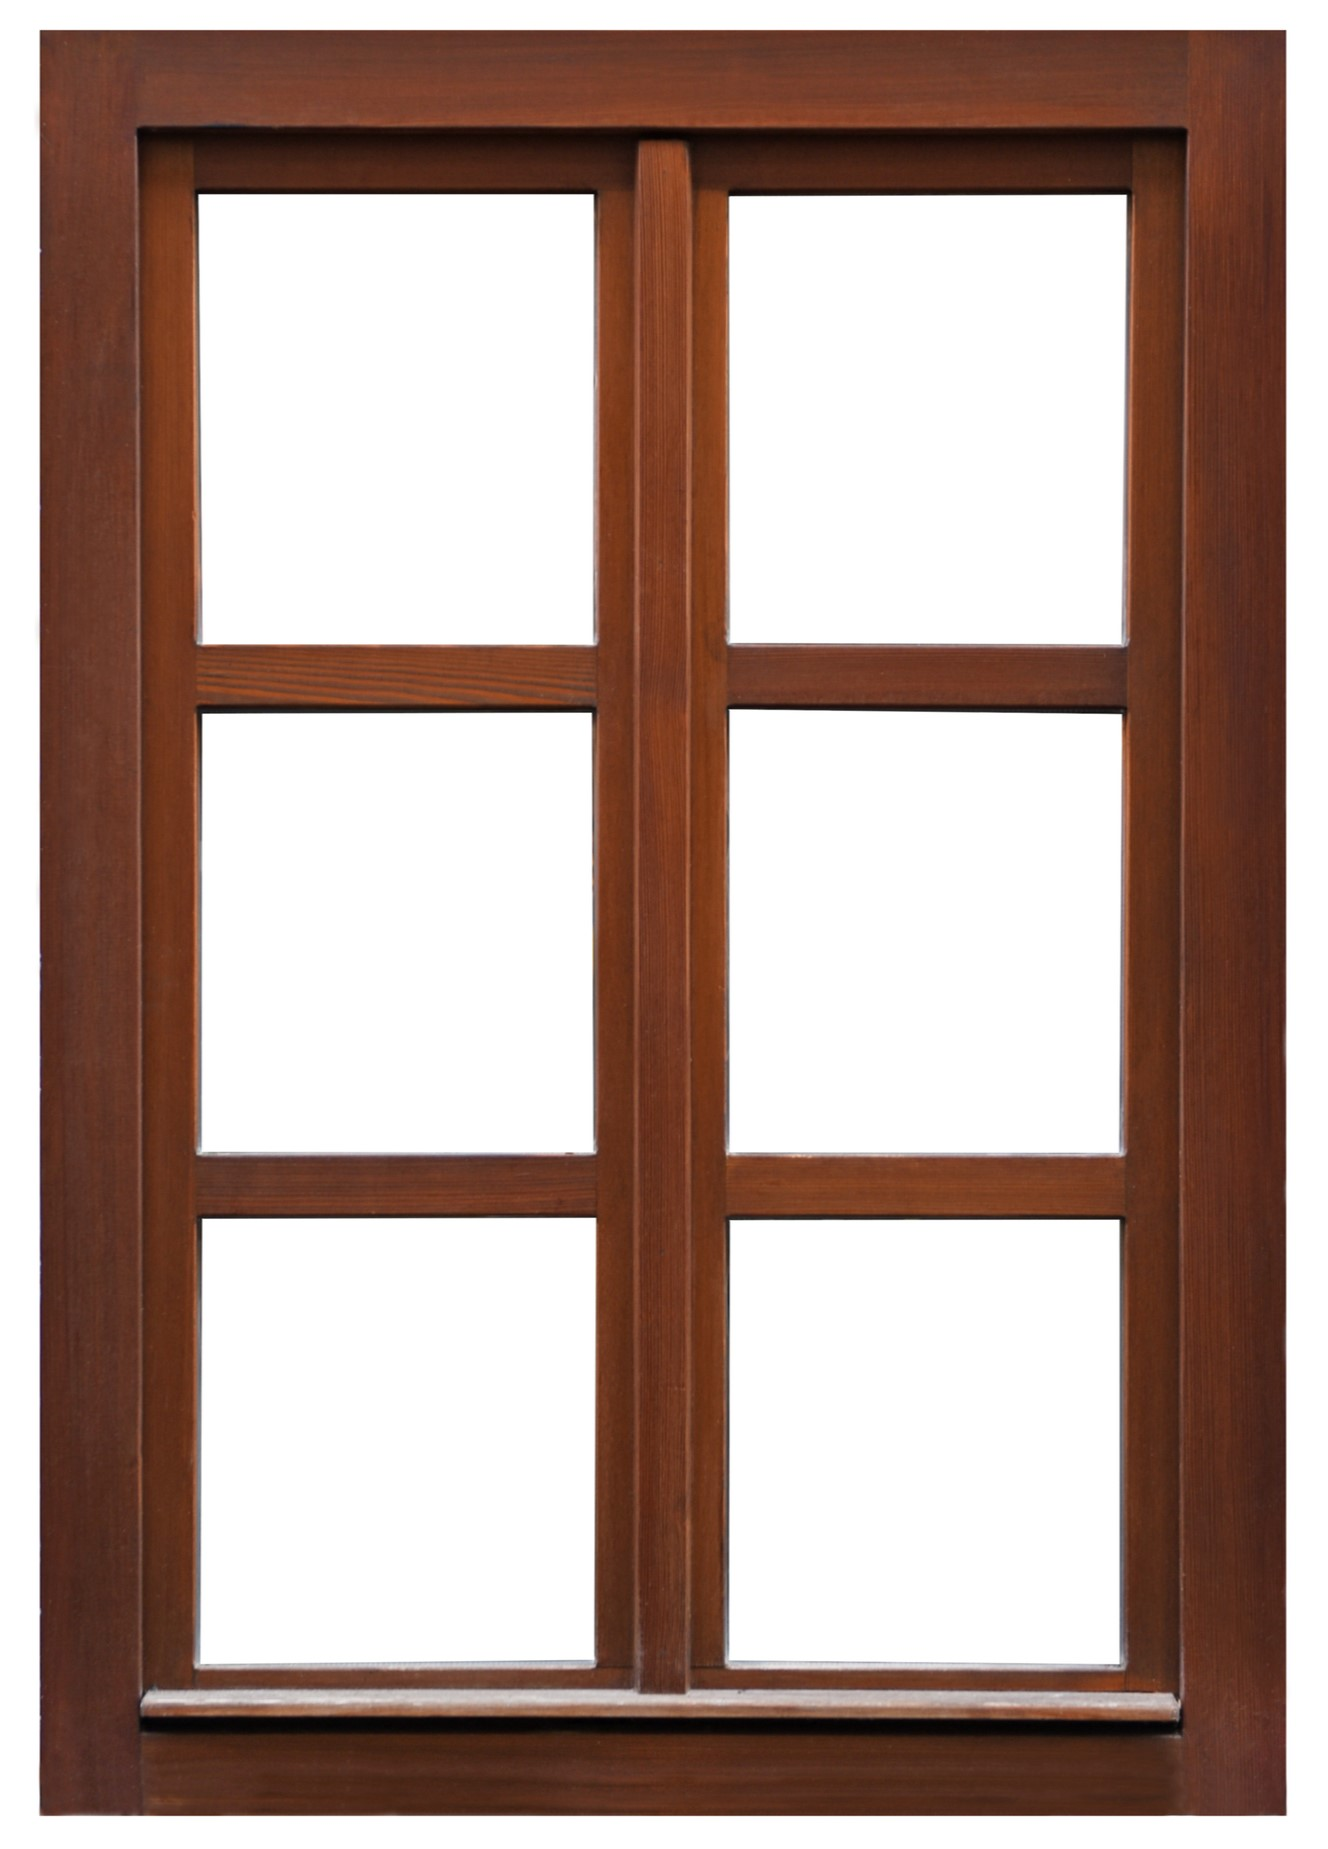 How to Replace the Windowpane in a Wooden Frame